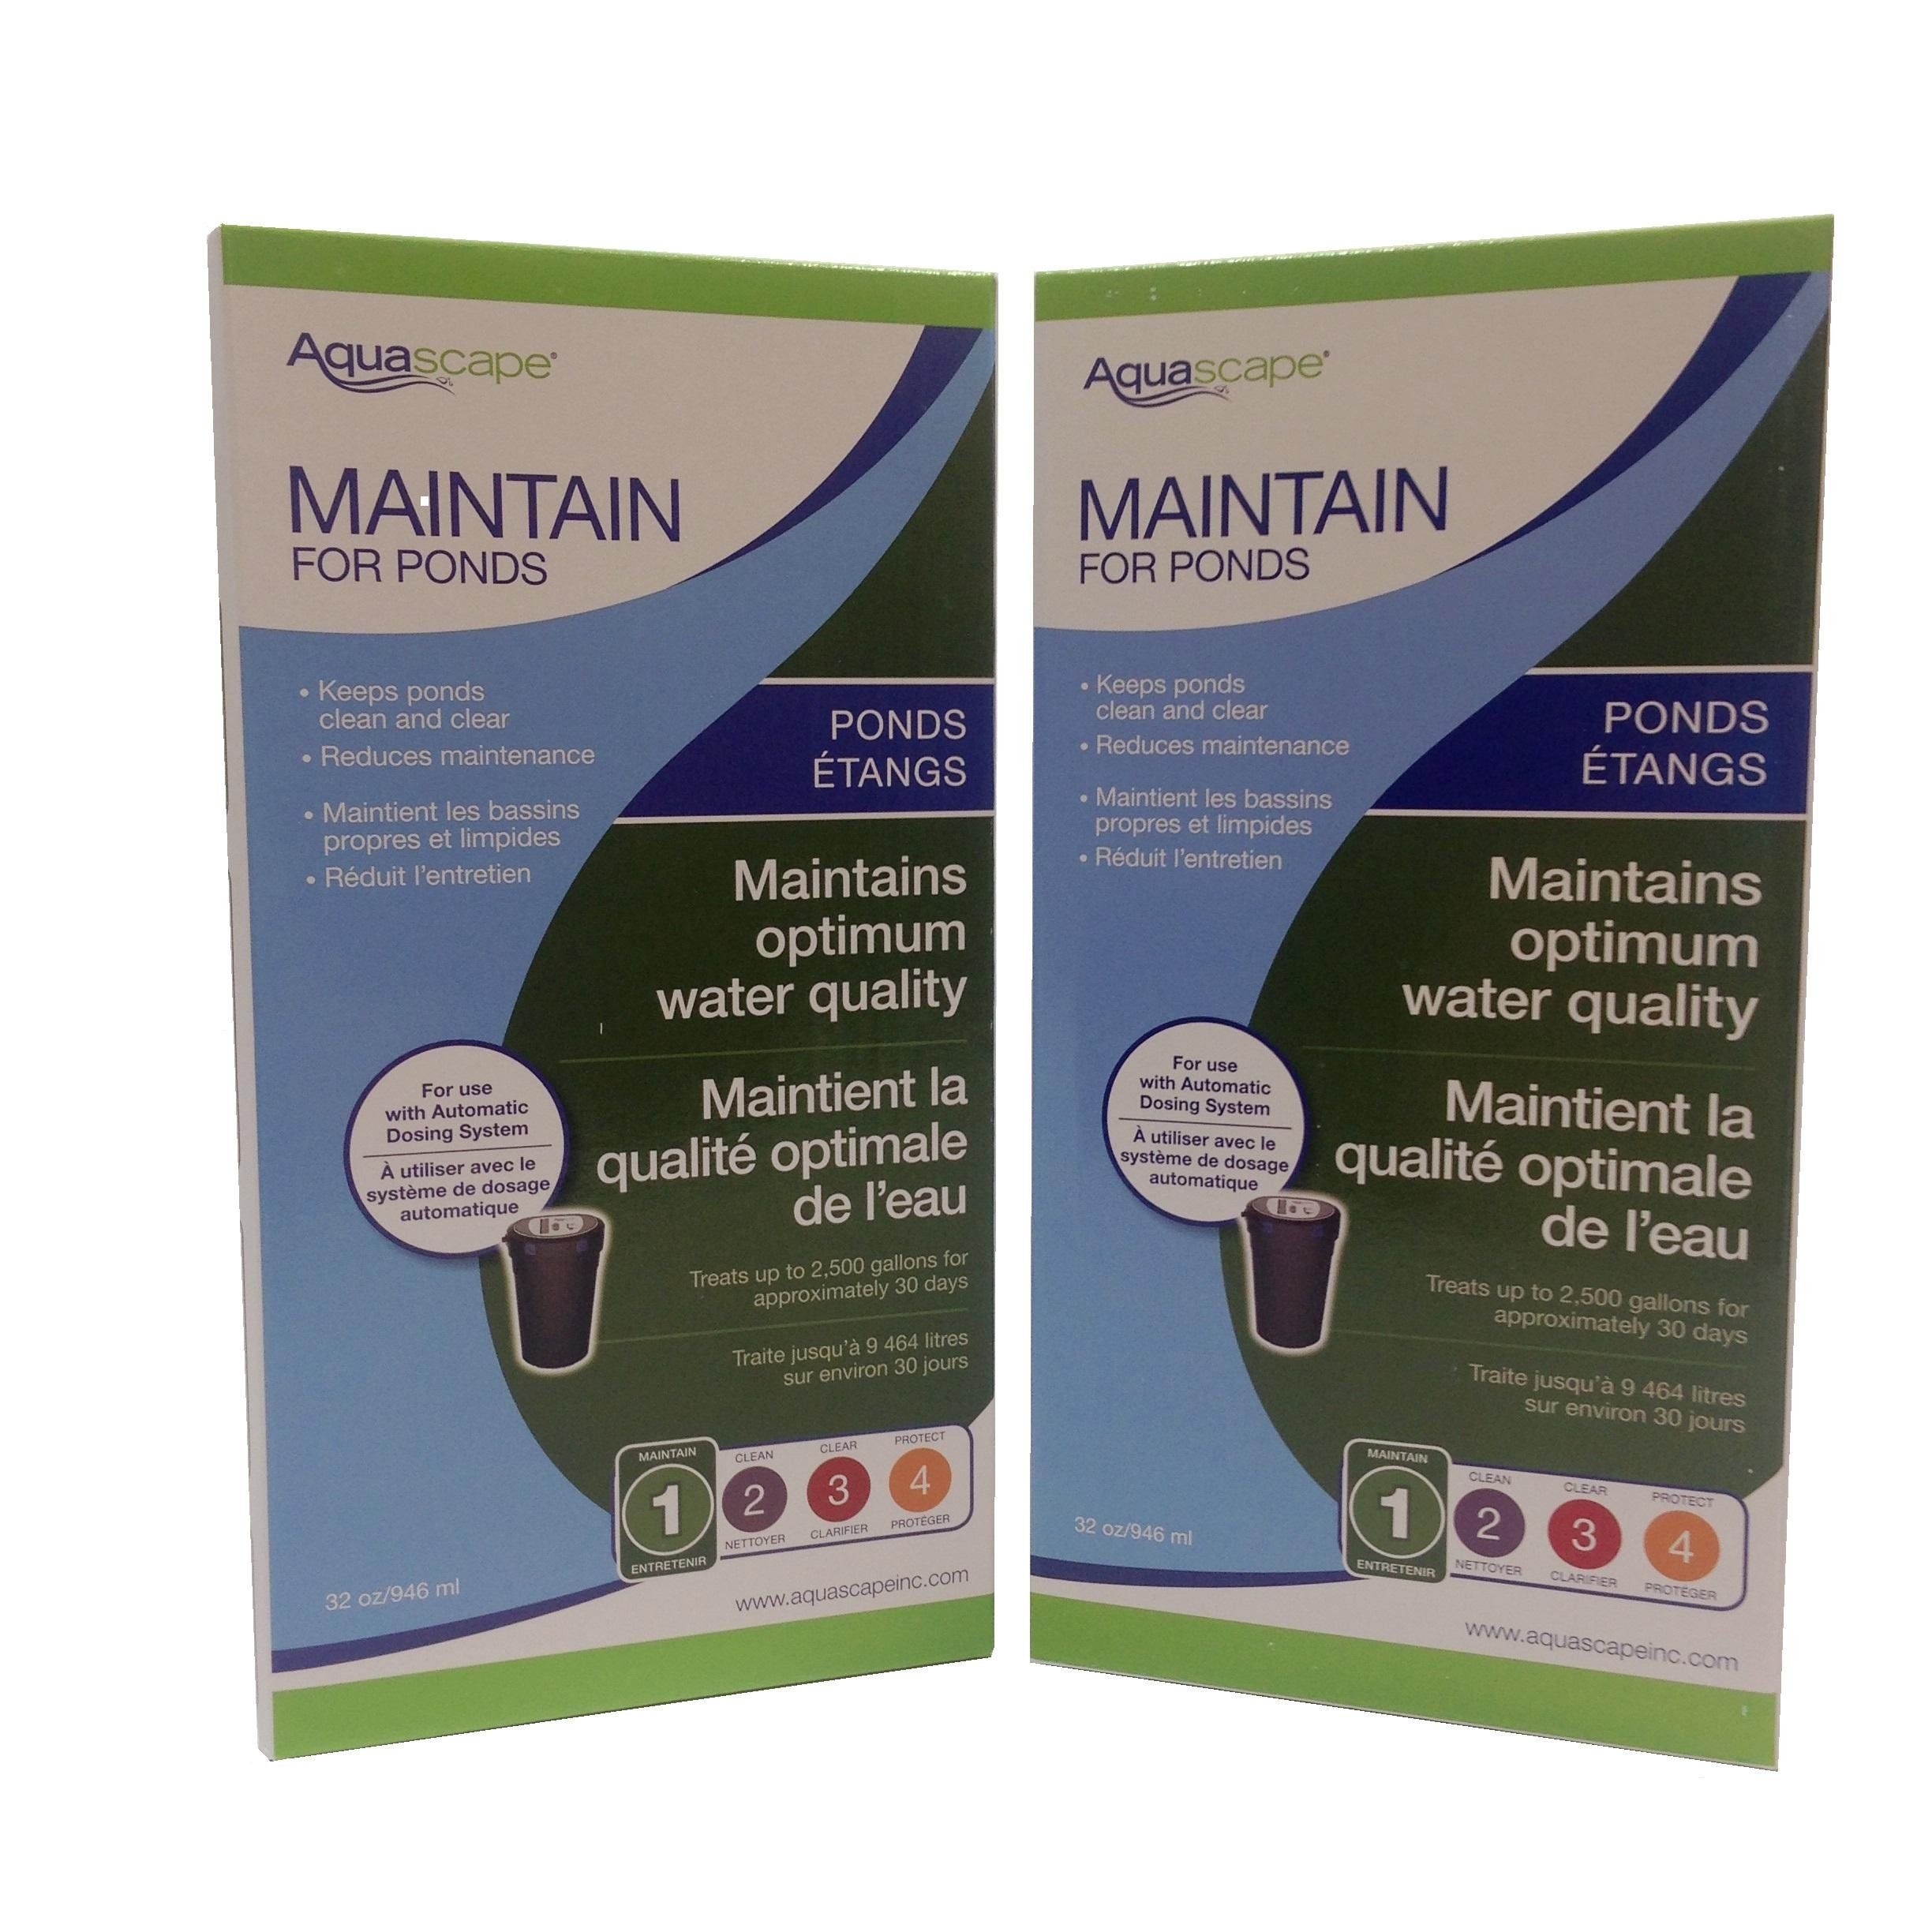 Aquascape 2-Pack of Maintain for Ponds 32 Ounce Refill for Automatic Dosing System Keeps Water Clean, Clear and Reduces Maintenance - Fish and Plant Safe by Aquascape